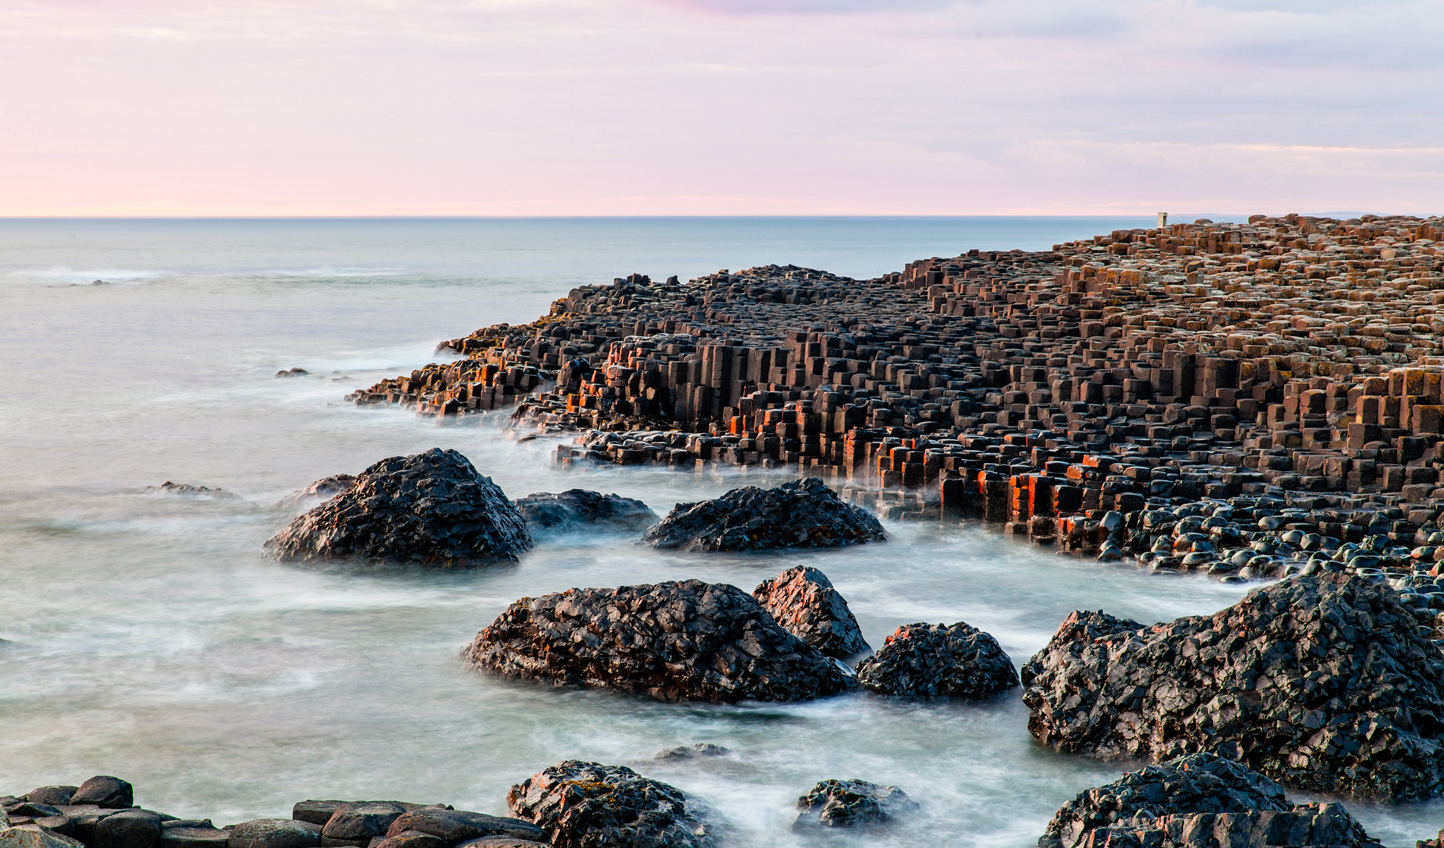 Walk in the footsteps of Giants on the Giant's Causeway